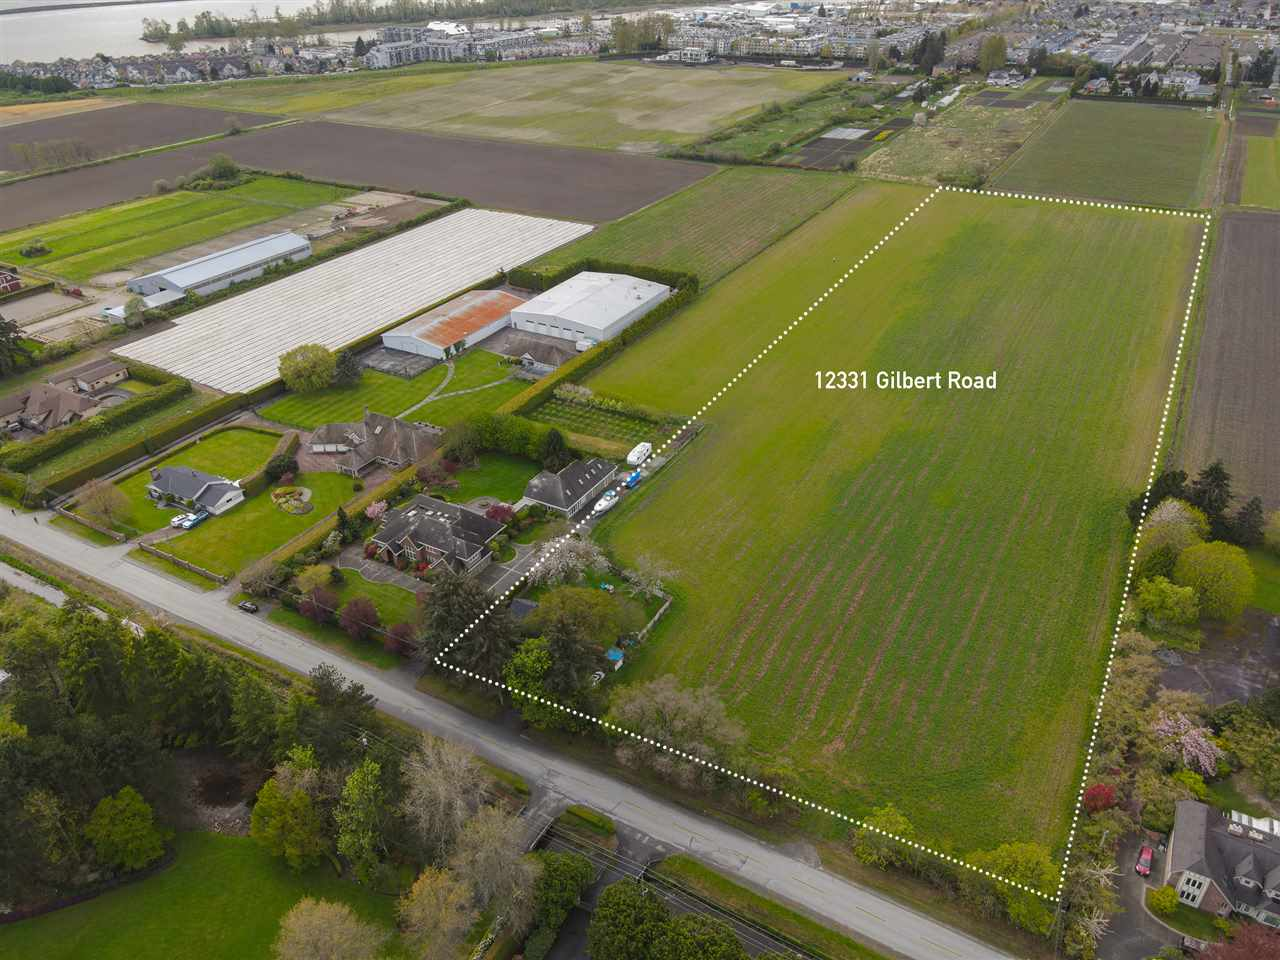 Imagine living on a farm in the city! 12331 Gilbert Rd is just 10 min drive: North to all the hustle and bustle around Richmond Centre, West to historic Steveston Village, East to access Hwy 99 to Vancouver/Delta/Surrey. This 10 acre farmland is a rare find with 353 sf frontage, it awaits your plan to build your dream family home, grow crops and enjoy life.  *great month to month tenants, please do not walk on the property without authorization.*  video: https://youtu.be/8QhTNNRfqMw